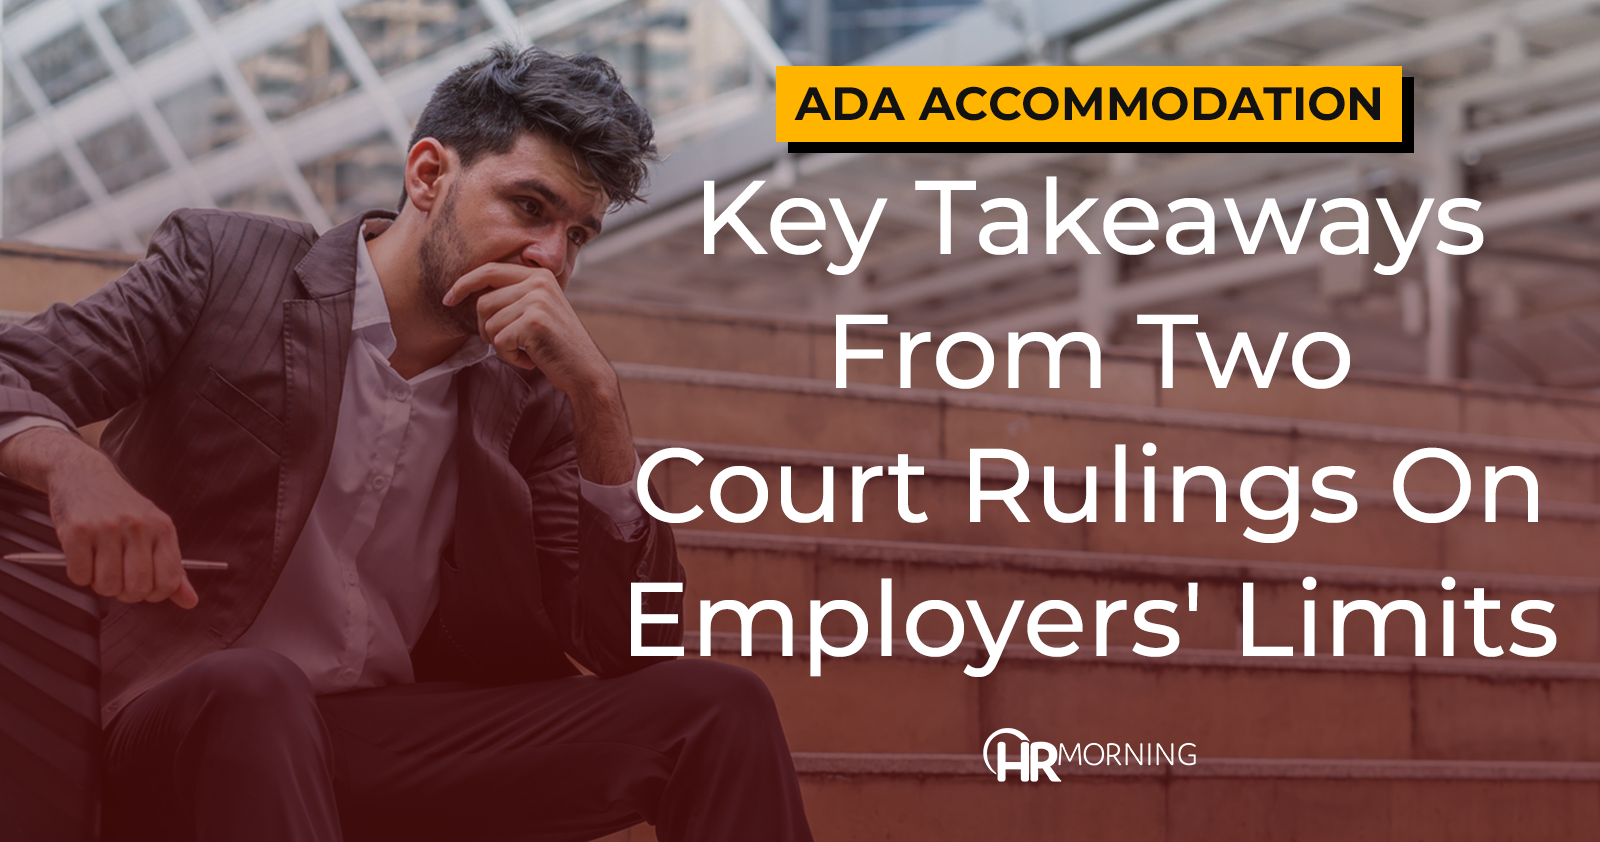 ADA accommodation: Key takeaways from two court rulings on employers' limits